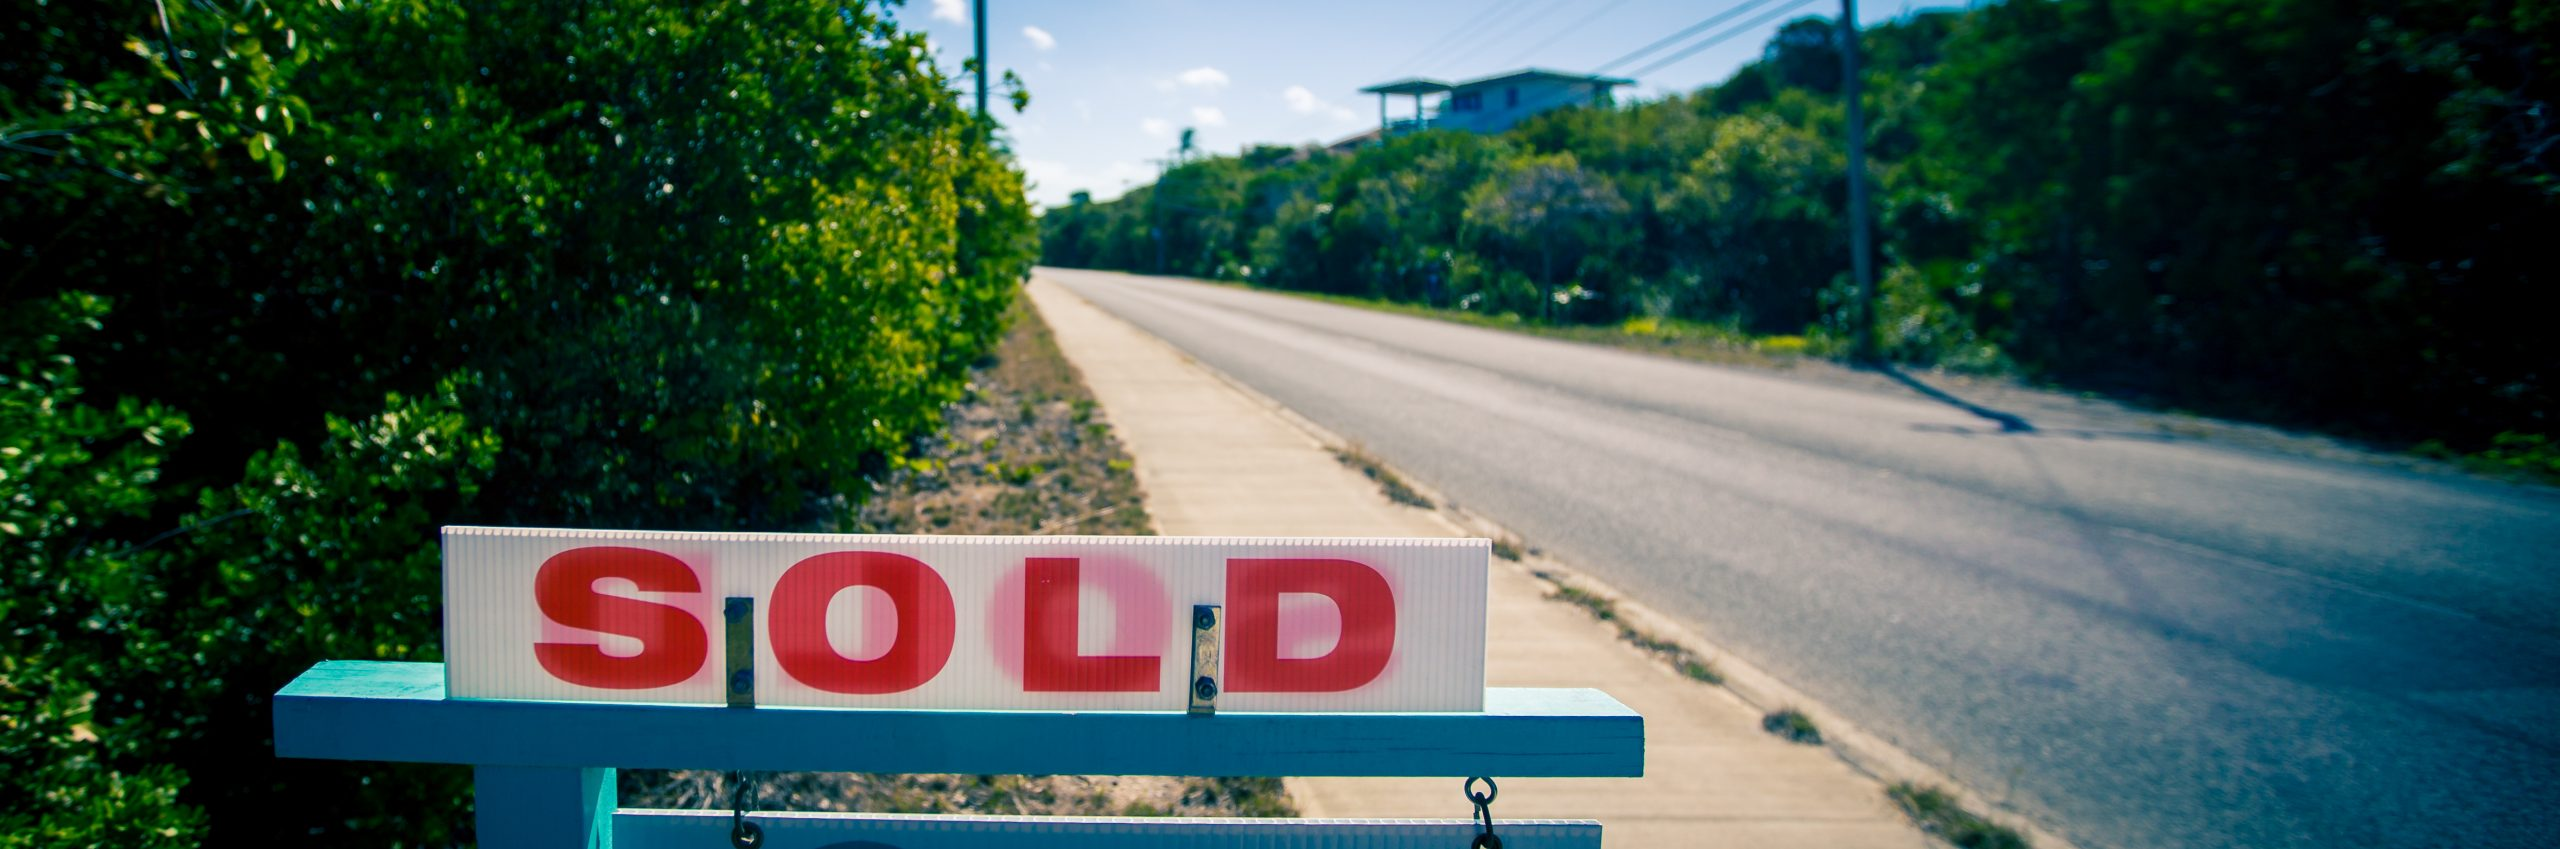 Want to Buy a Land Lease Home? Here's How to Find the Right Real Estate Agent